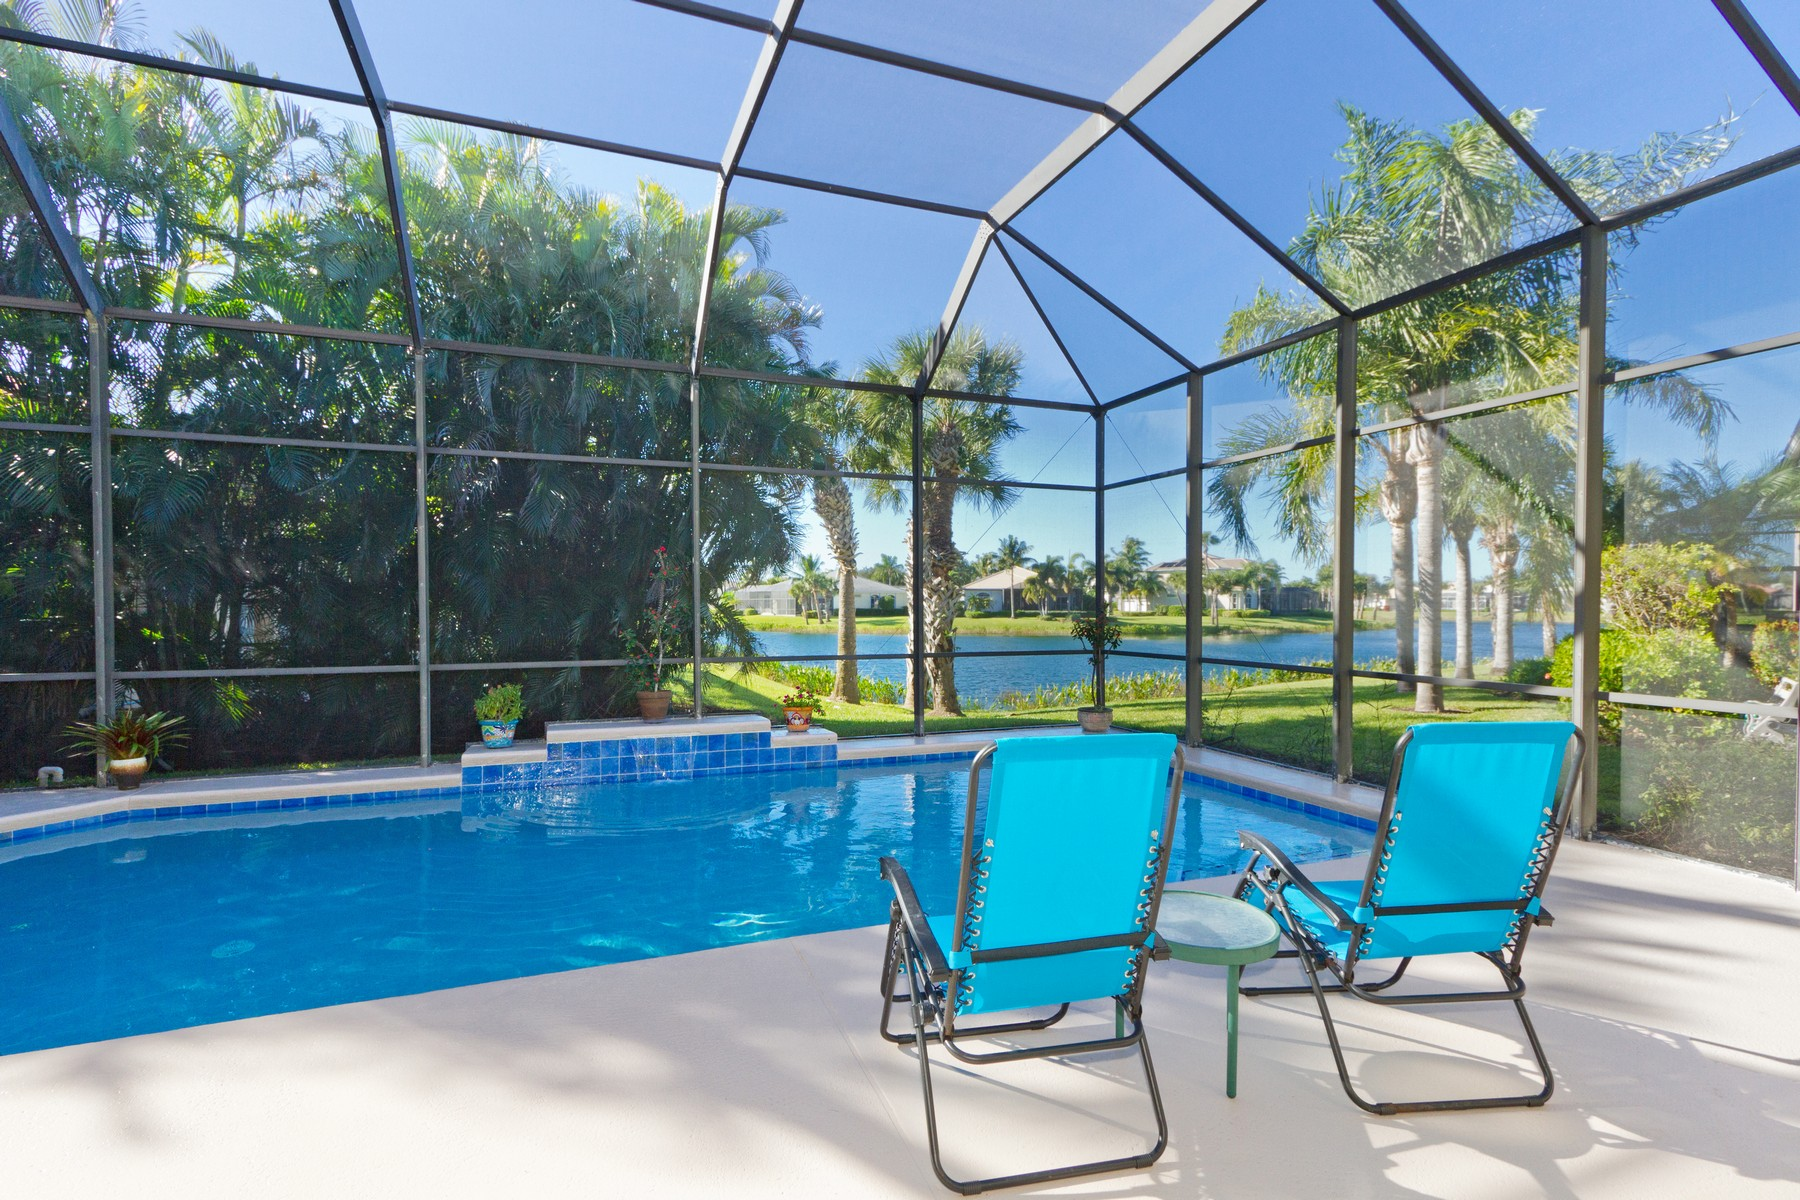 Property for Sale at Enjoy Poolside Living 1338 Riverside Lane Vero Beach, Florida 32963 United States